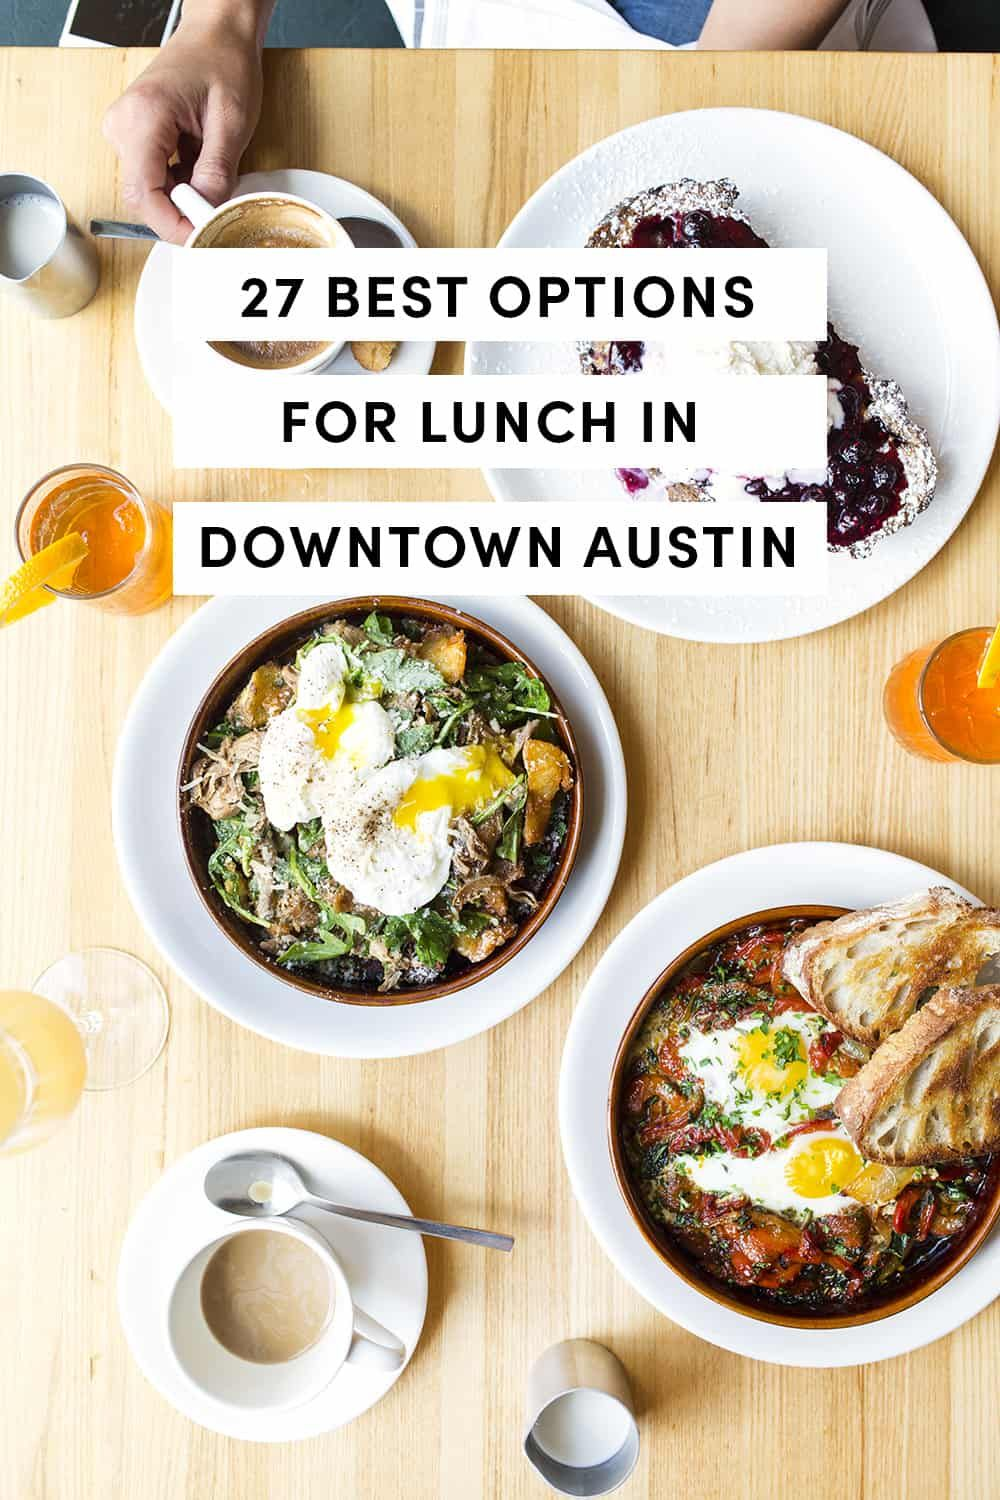 27 best options for lunch in downtown austin tx downtown